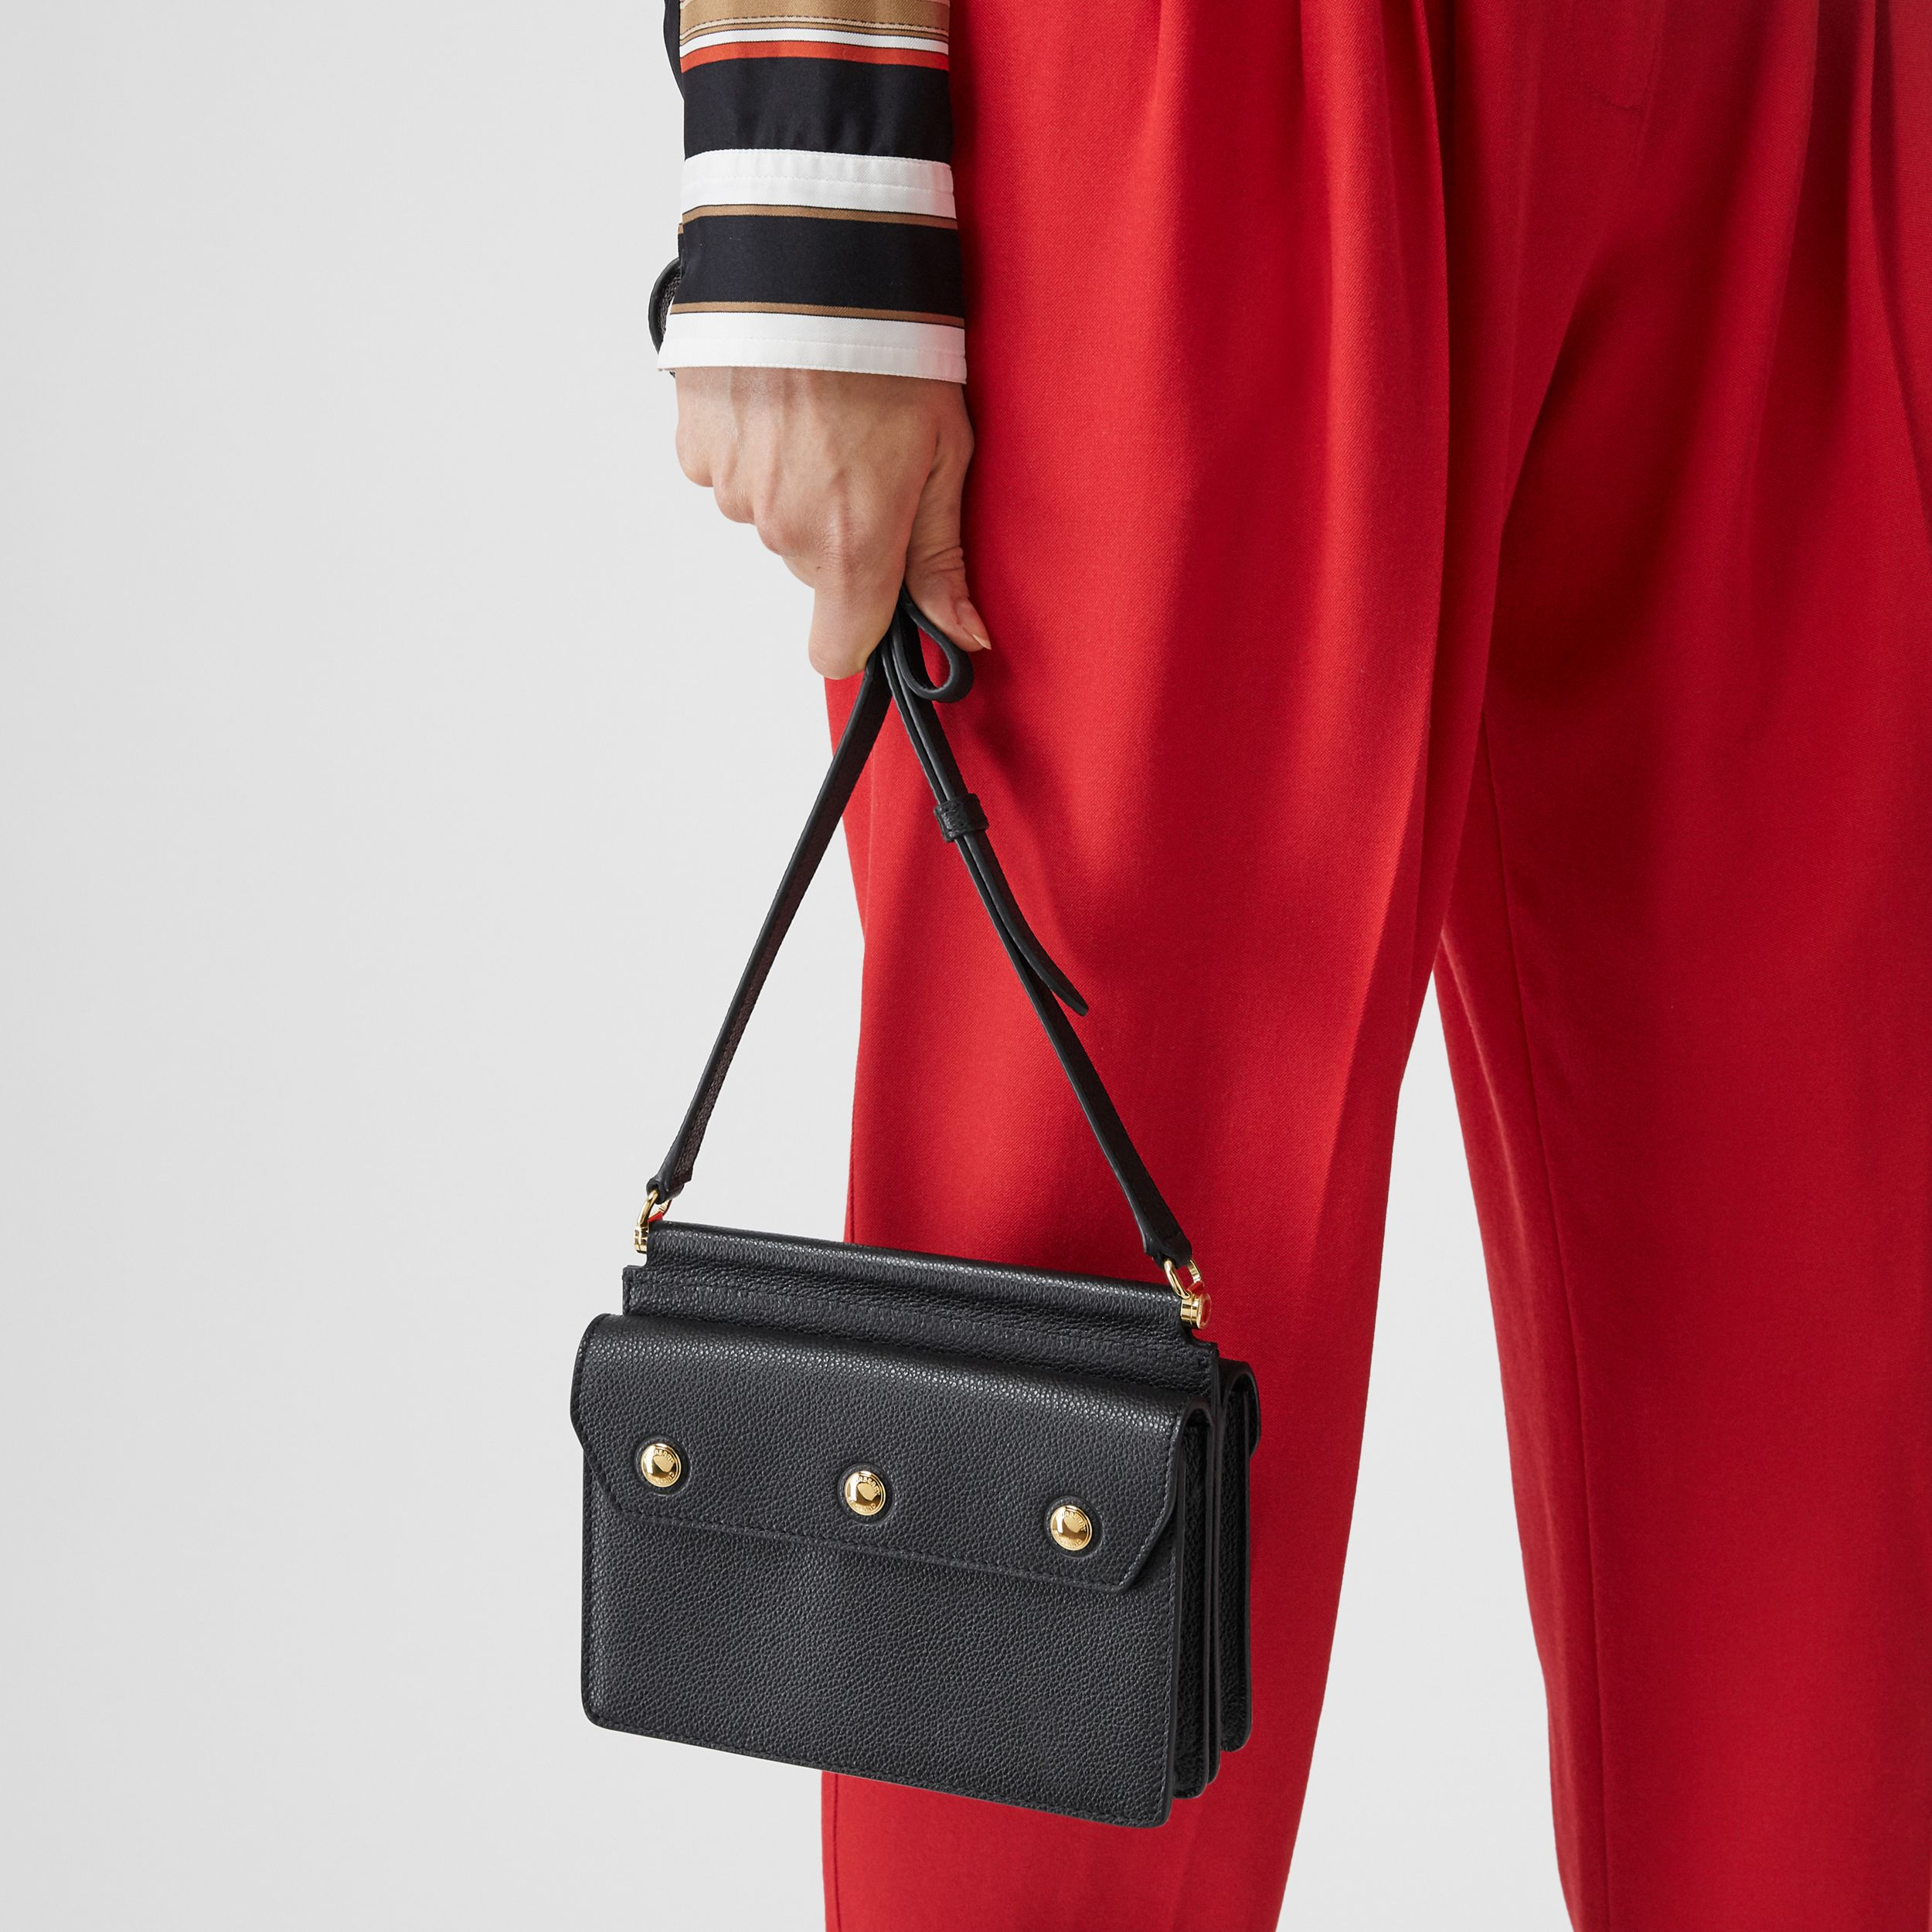 Mini Leather Title Bag with Pocket Detail in Black - Women | Burberry - 3